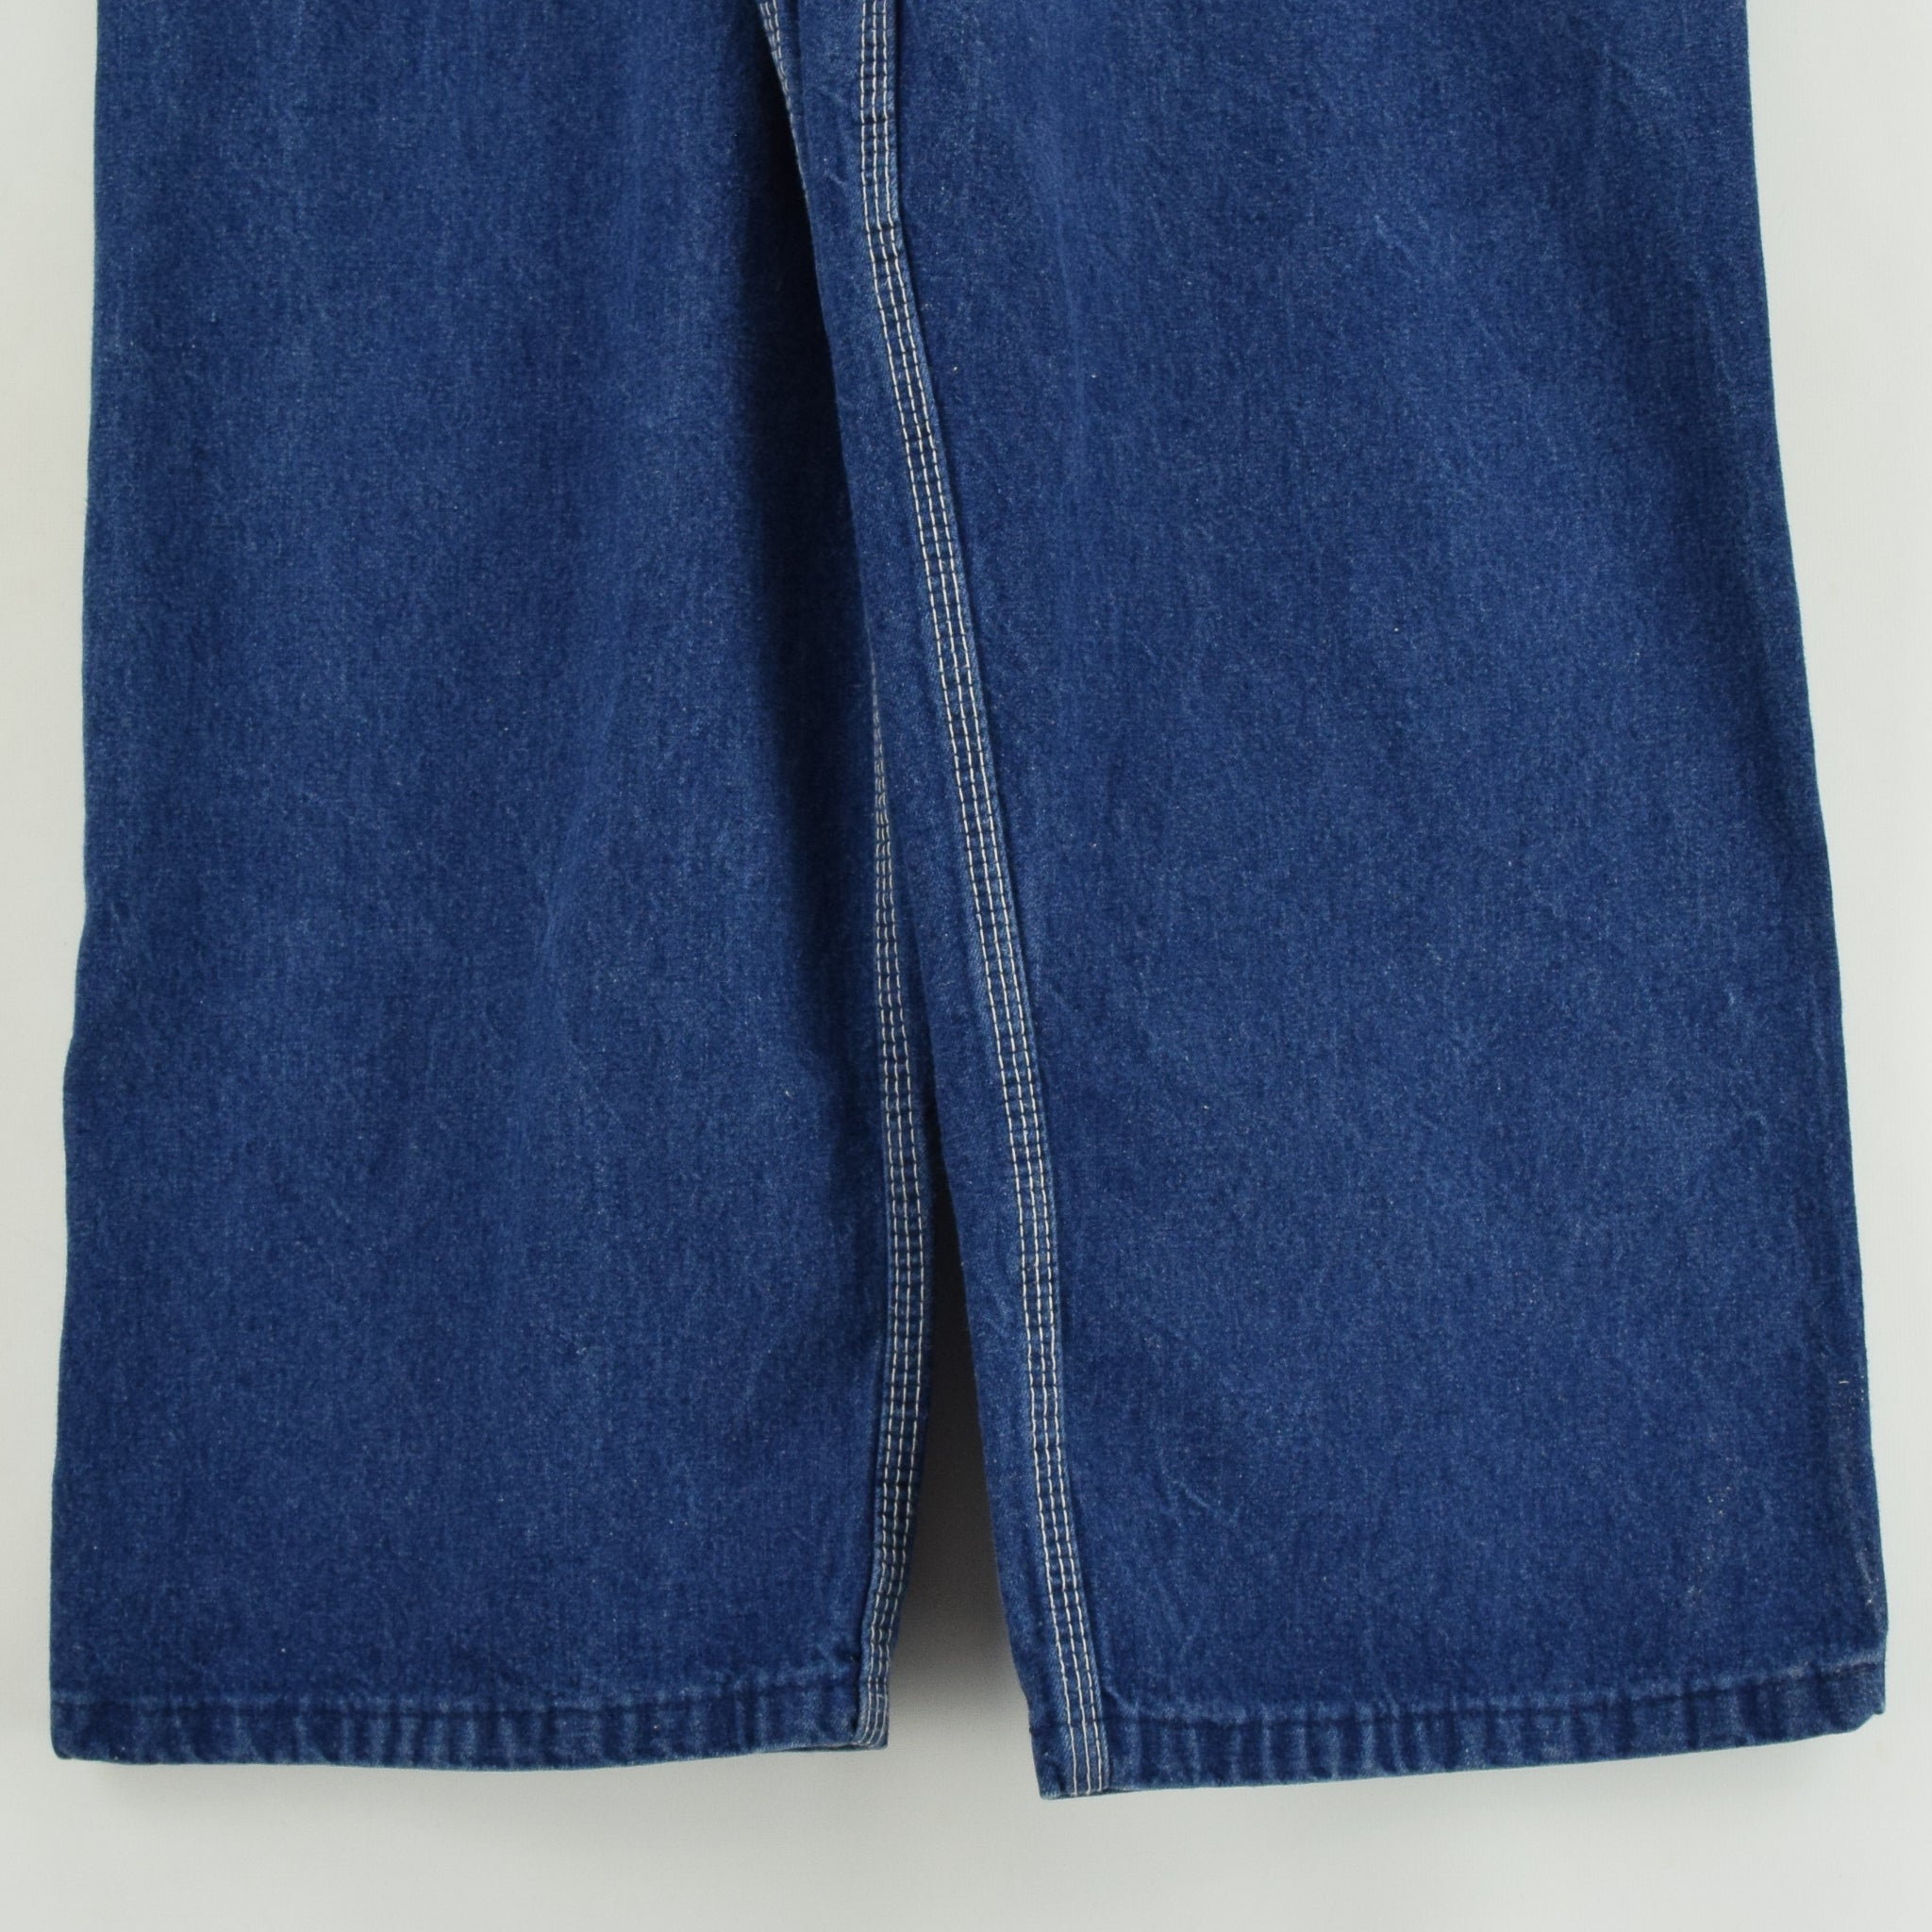 Vintage Key Imperial Aristocrat of Overalls Blue Denim Work Dungarees 34 W 31 L back hem